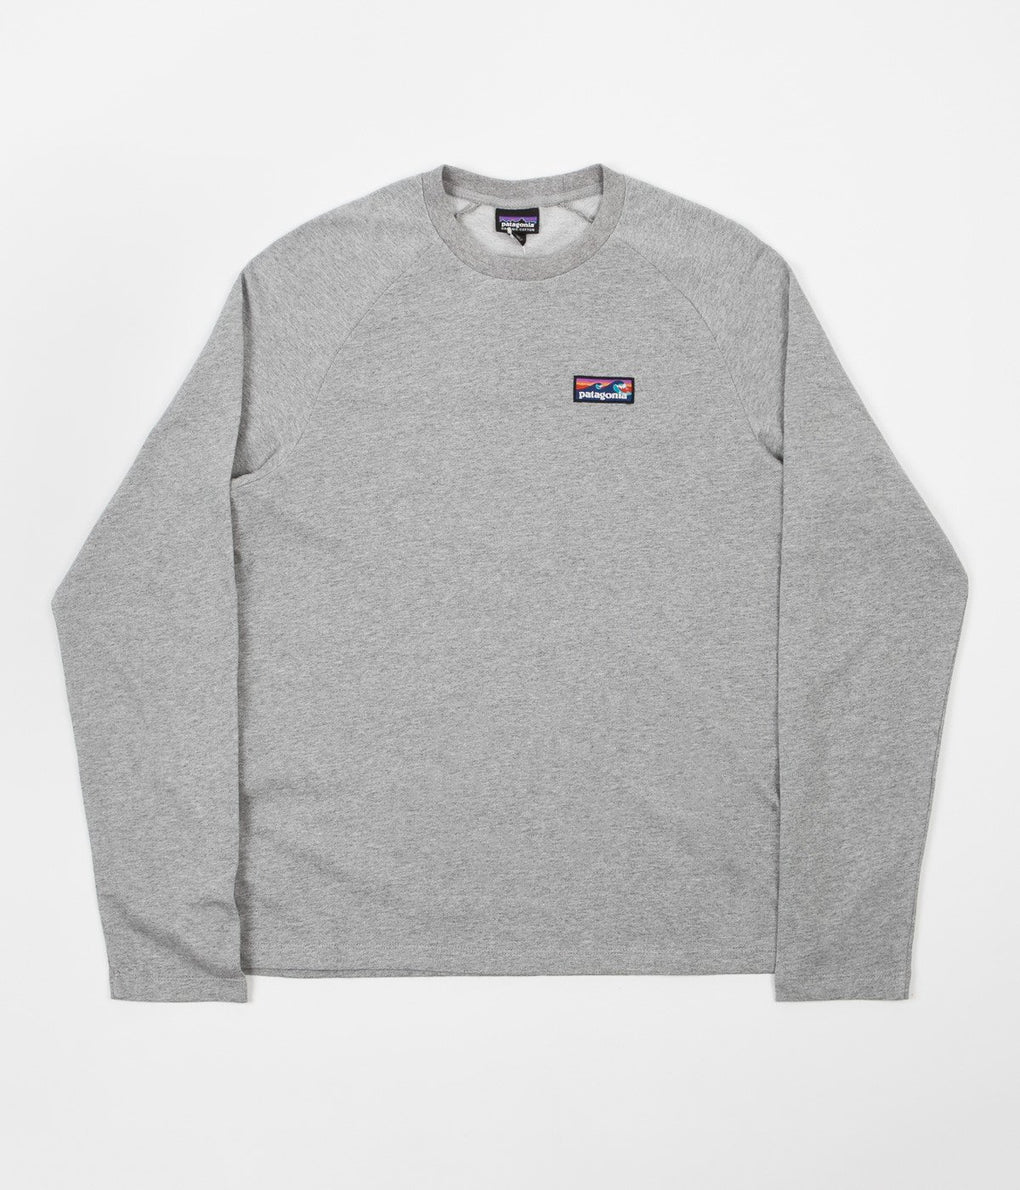 Patagonia Board Short Label Crewneck Sweatshirt - Feather Grey